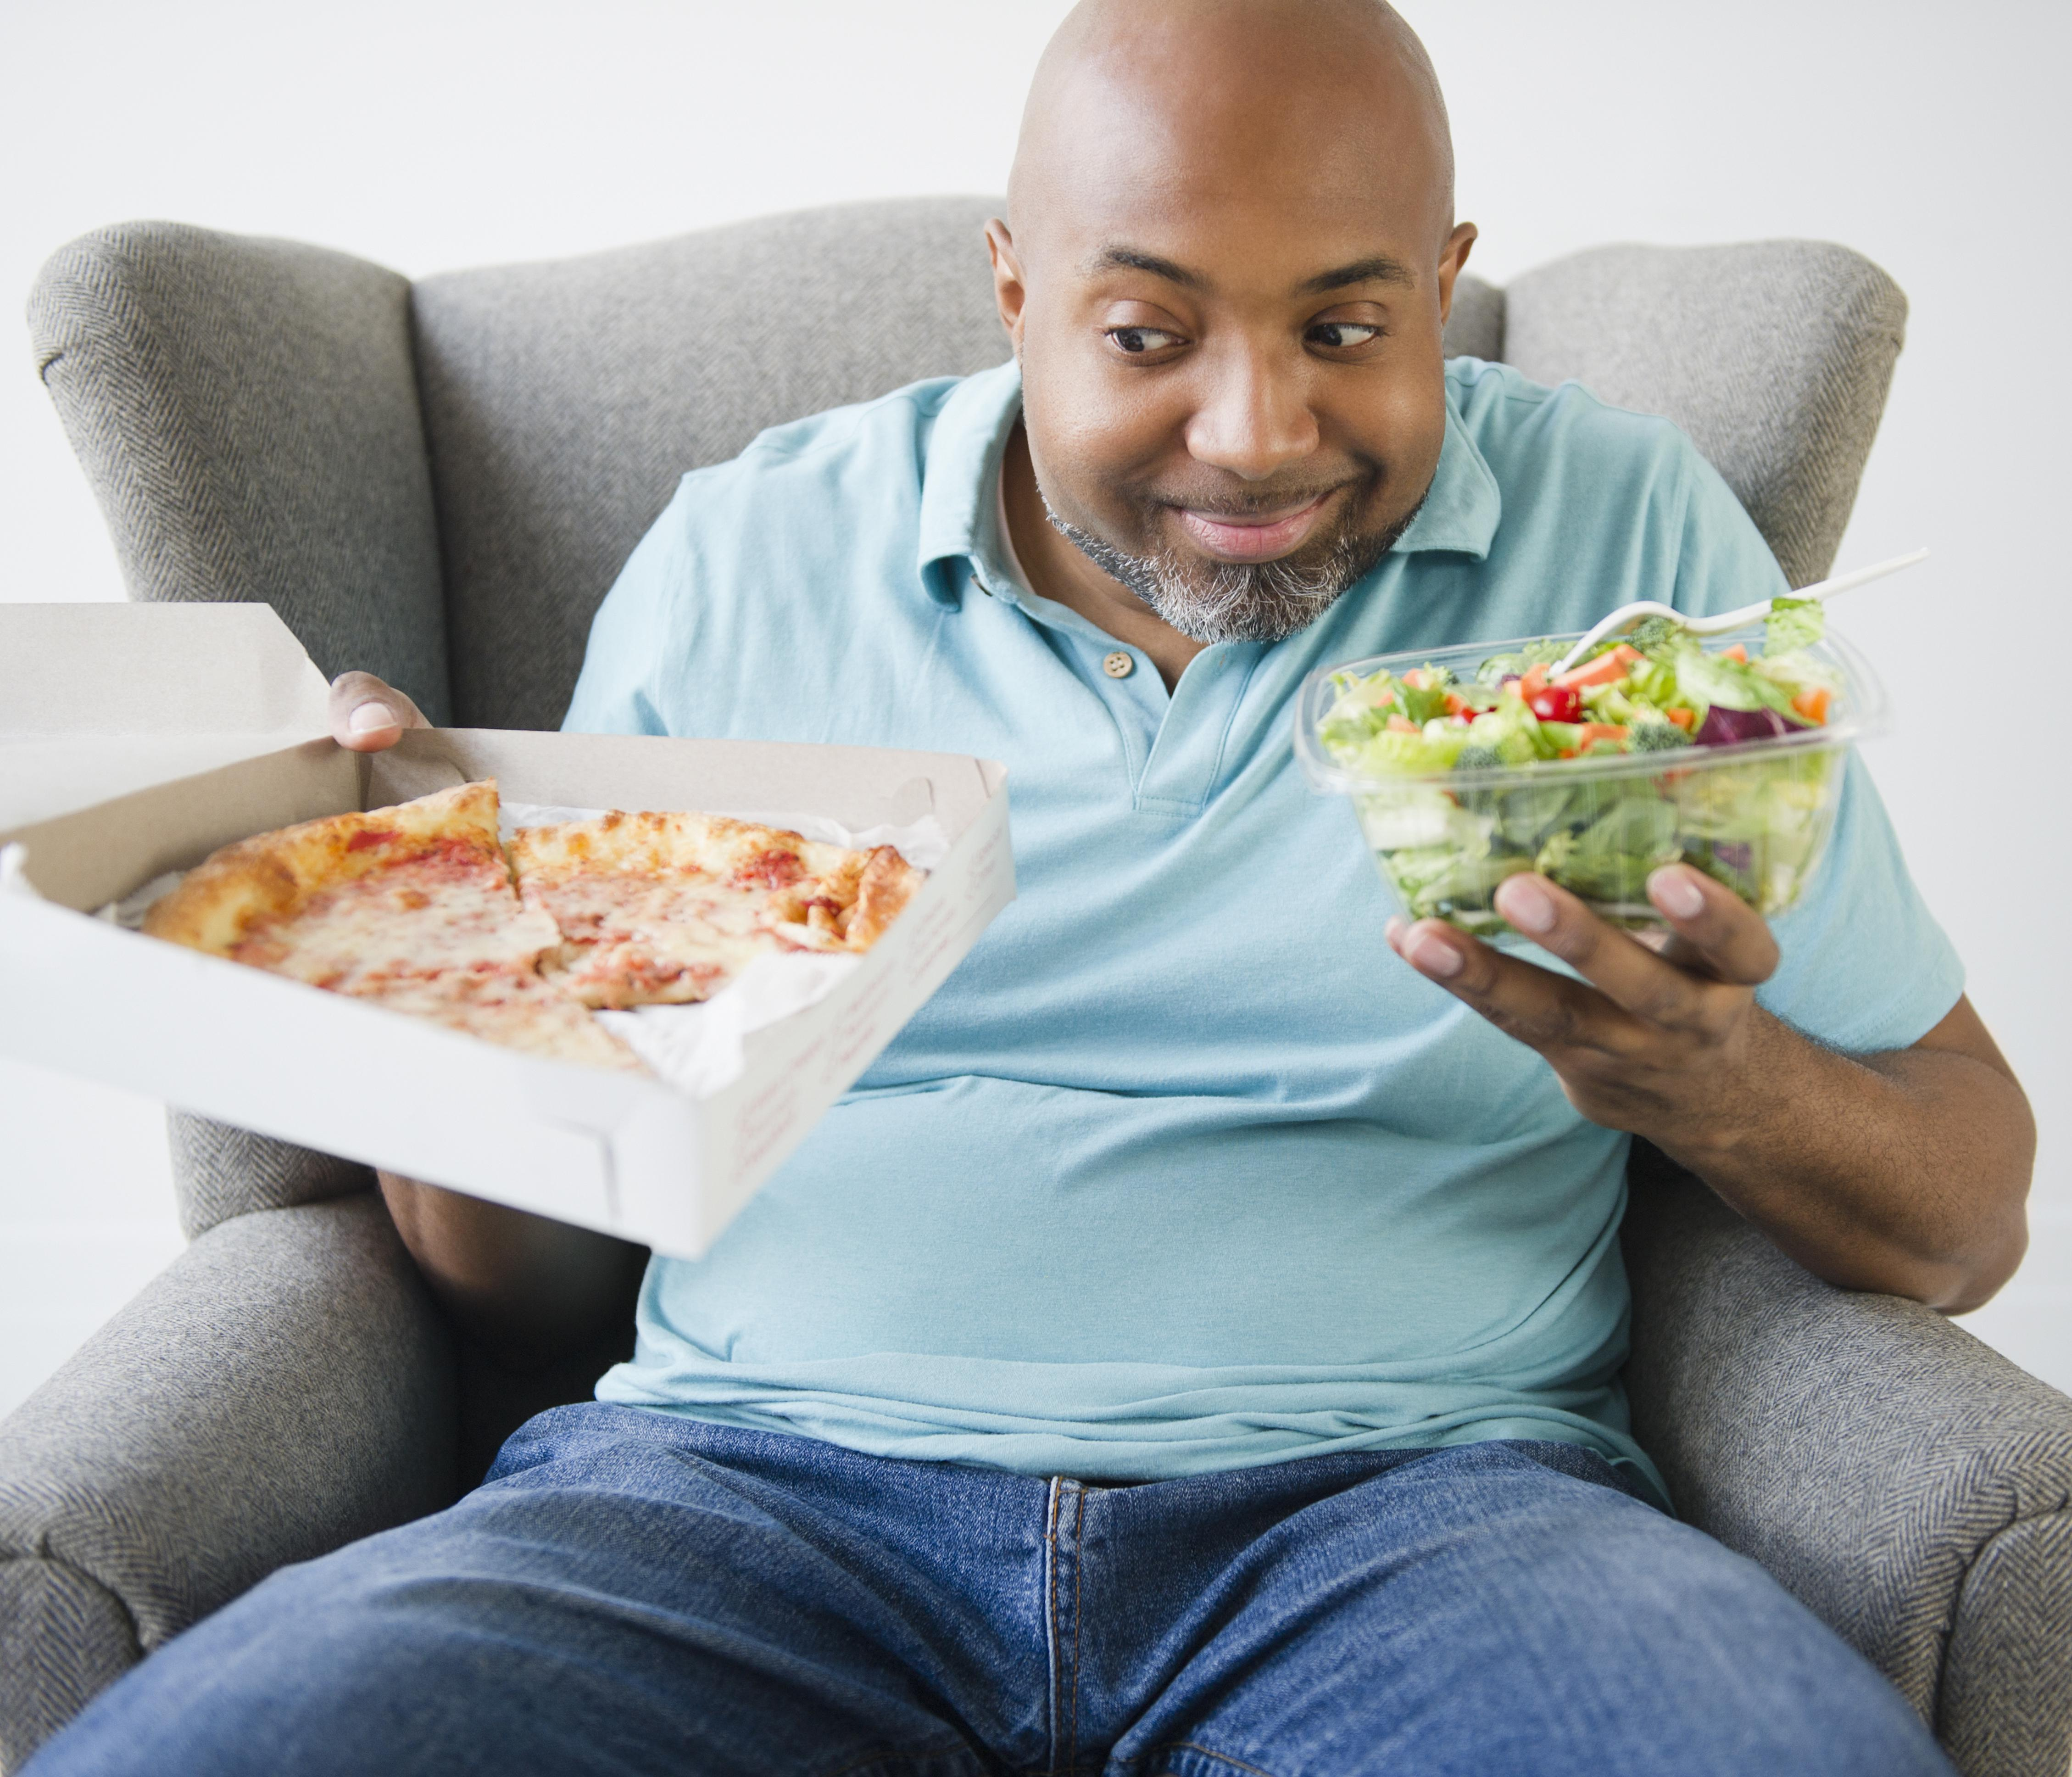 African American deciding between salad and pizza